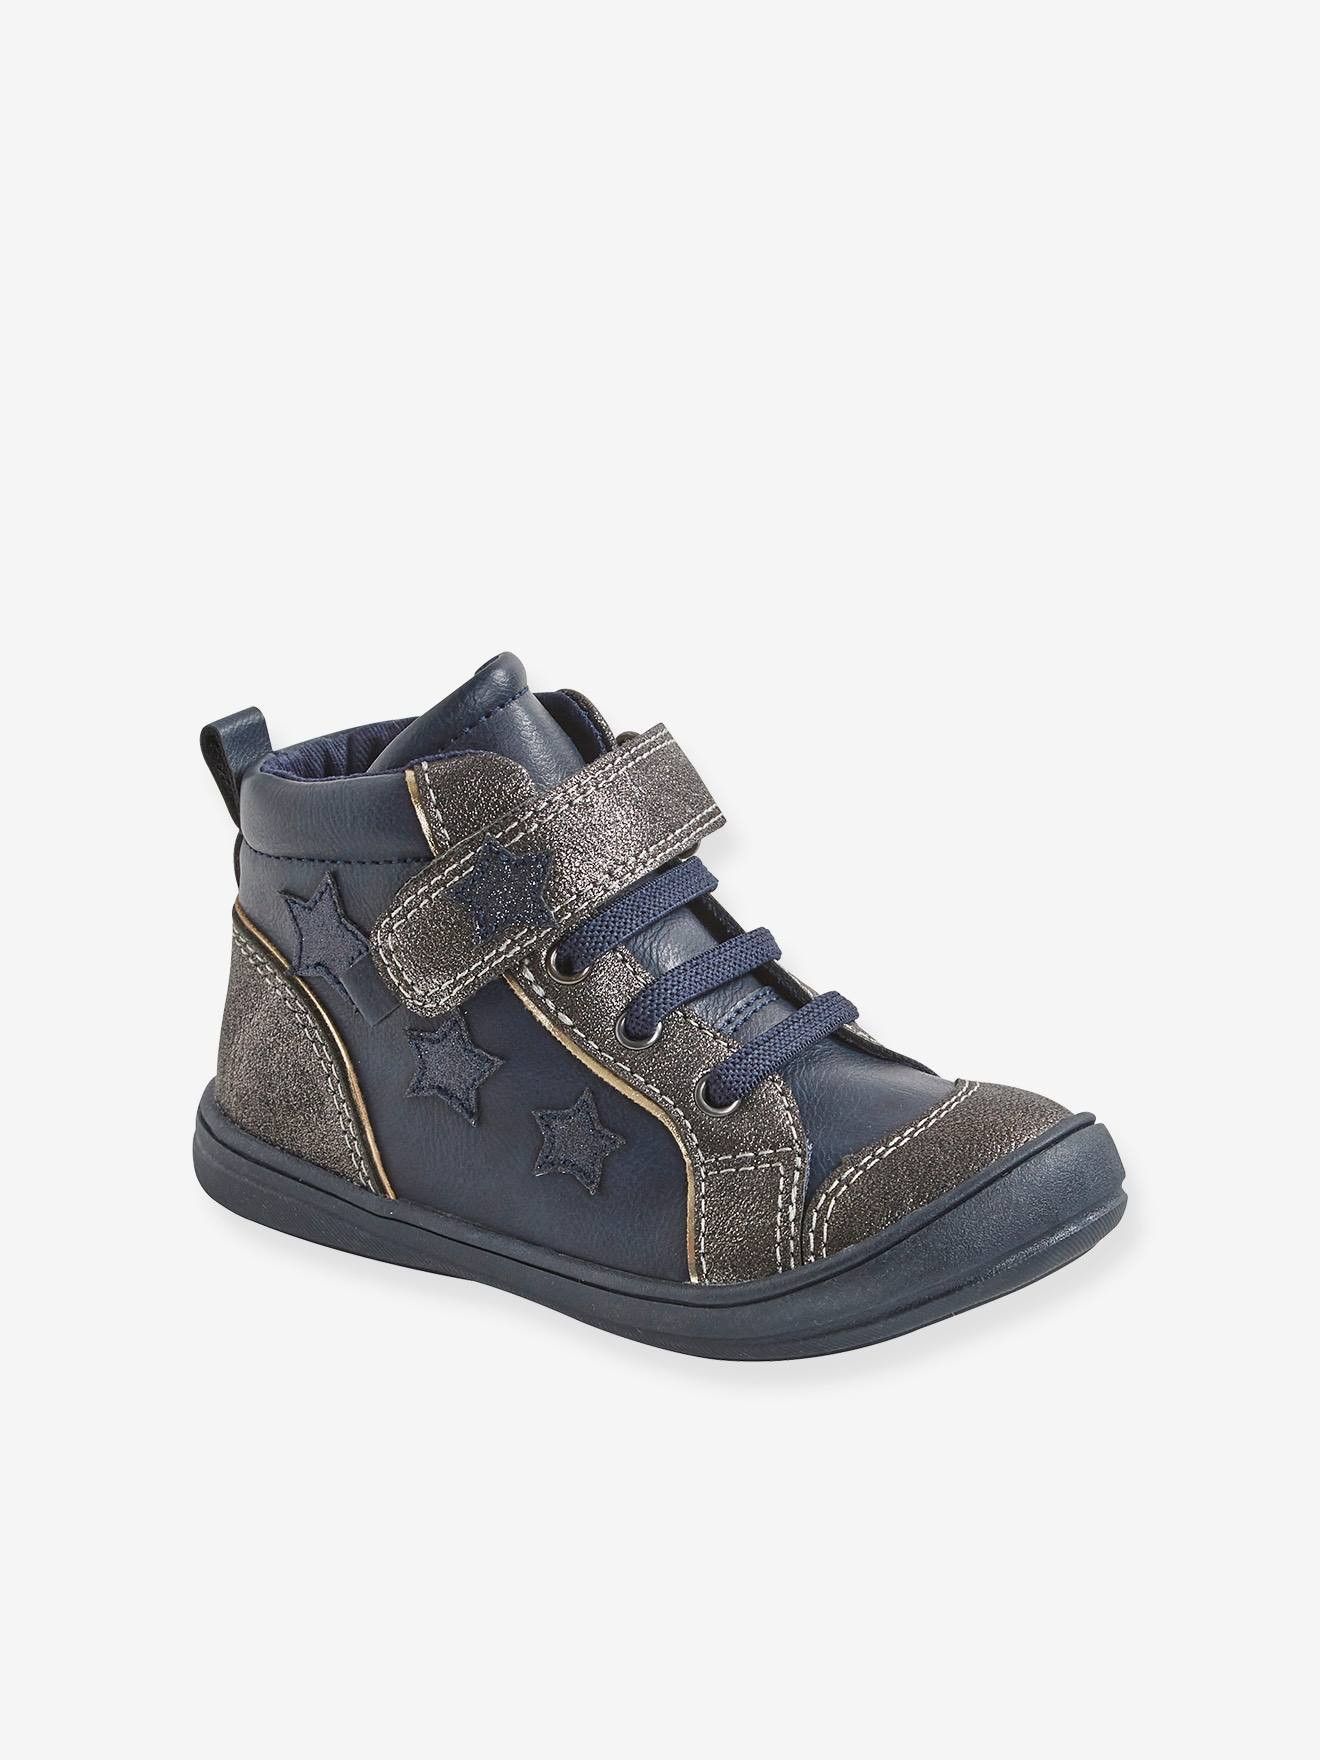 Bottines fille collection maternelle marine, Chaussures